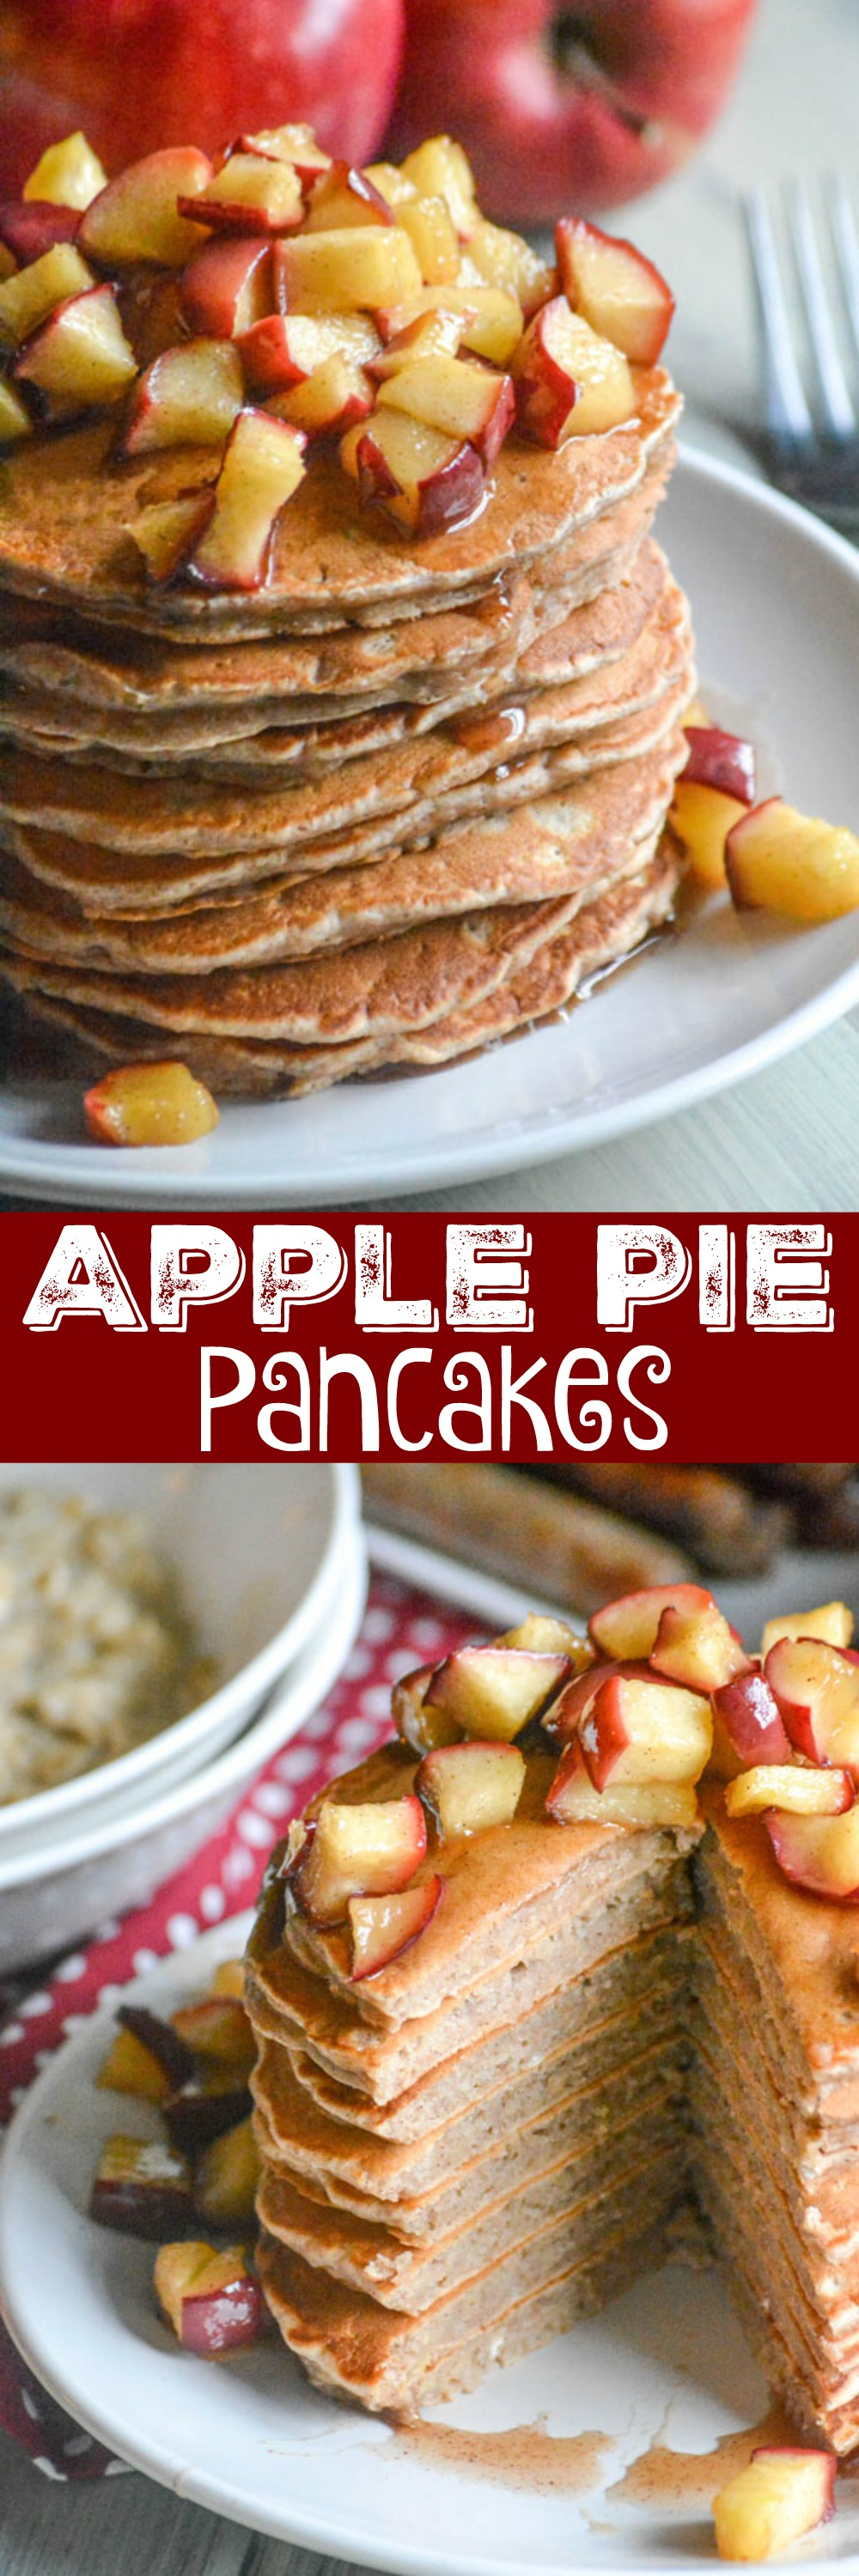 Warm Apple Pie Pancakes are the perfect thing for a Fall breakfast or brunch. With hints of cinnamon, nutmeg, & clove, these stacks are topped with a warm sauteed apple syrup. It's a whole some dish, with just the right amount of sweet thrown in. Get your apple pie fix, without all the work since it's not just for dessert anymore.